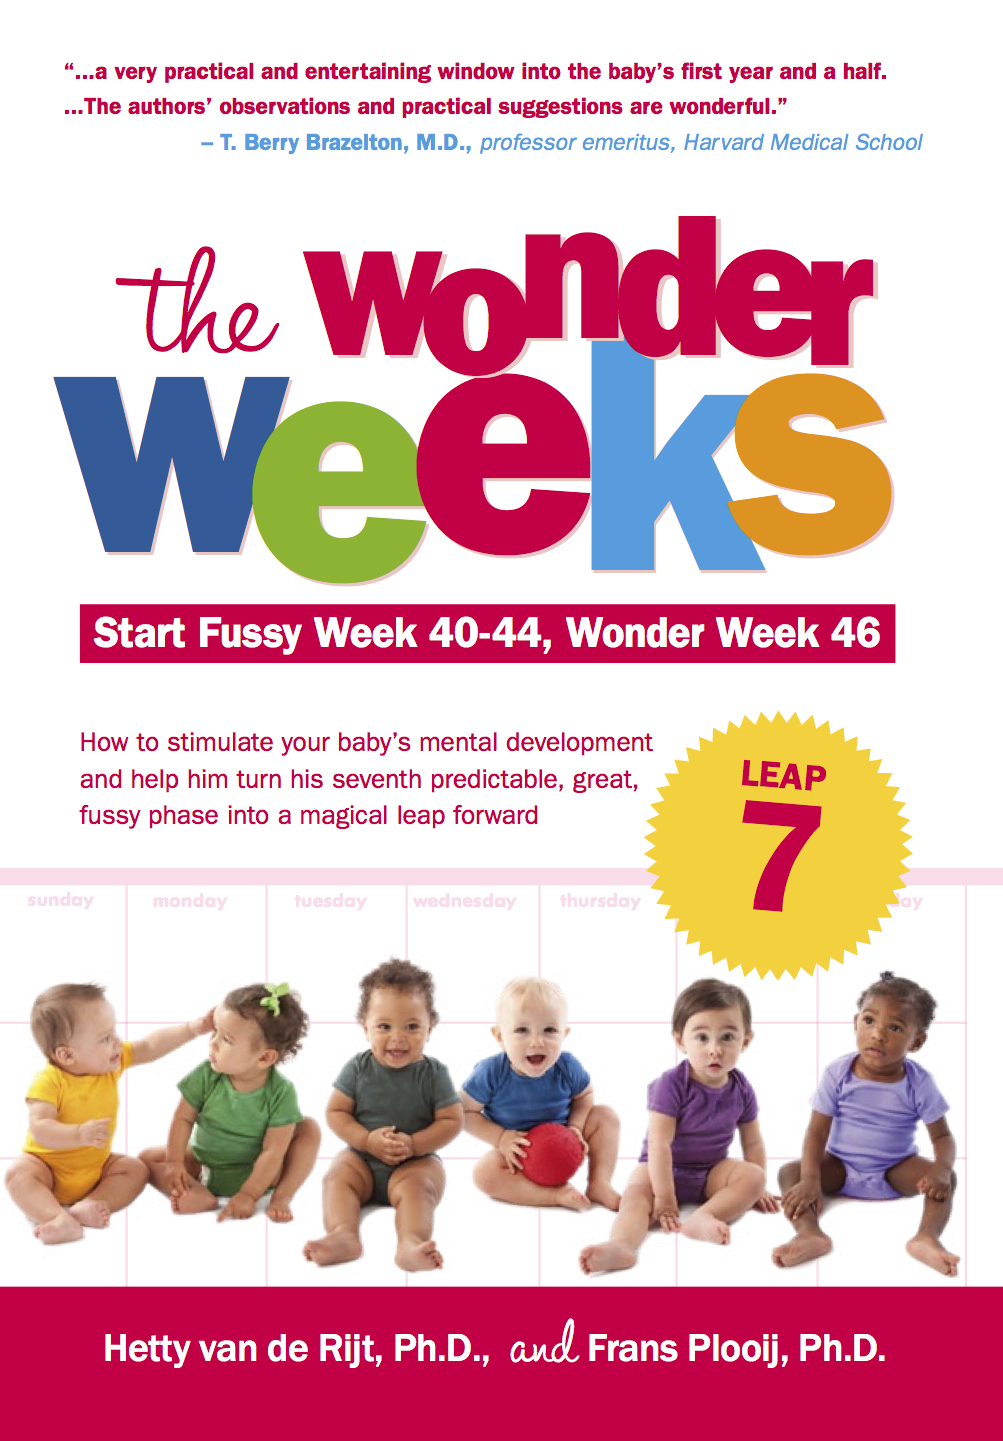 The Wonder Weeks, Leap 7